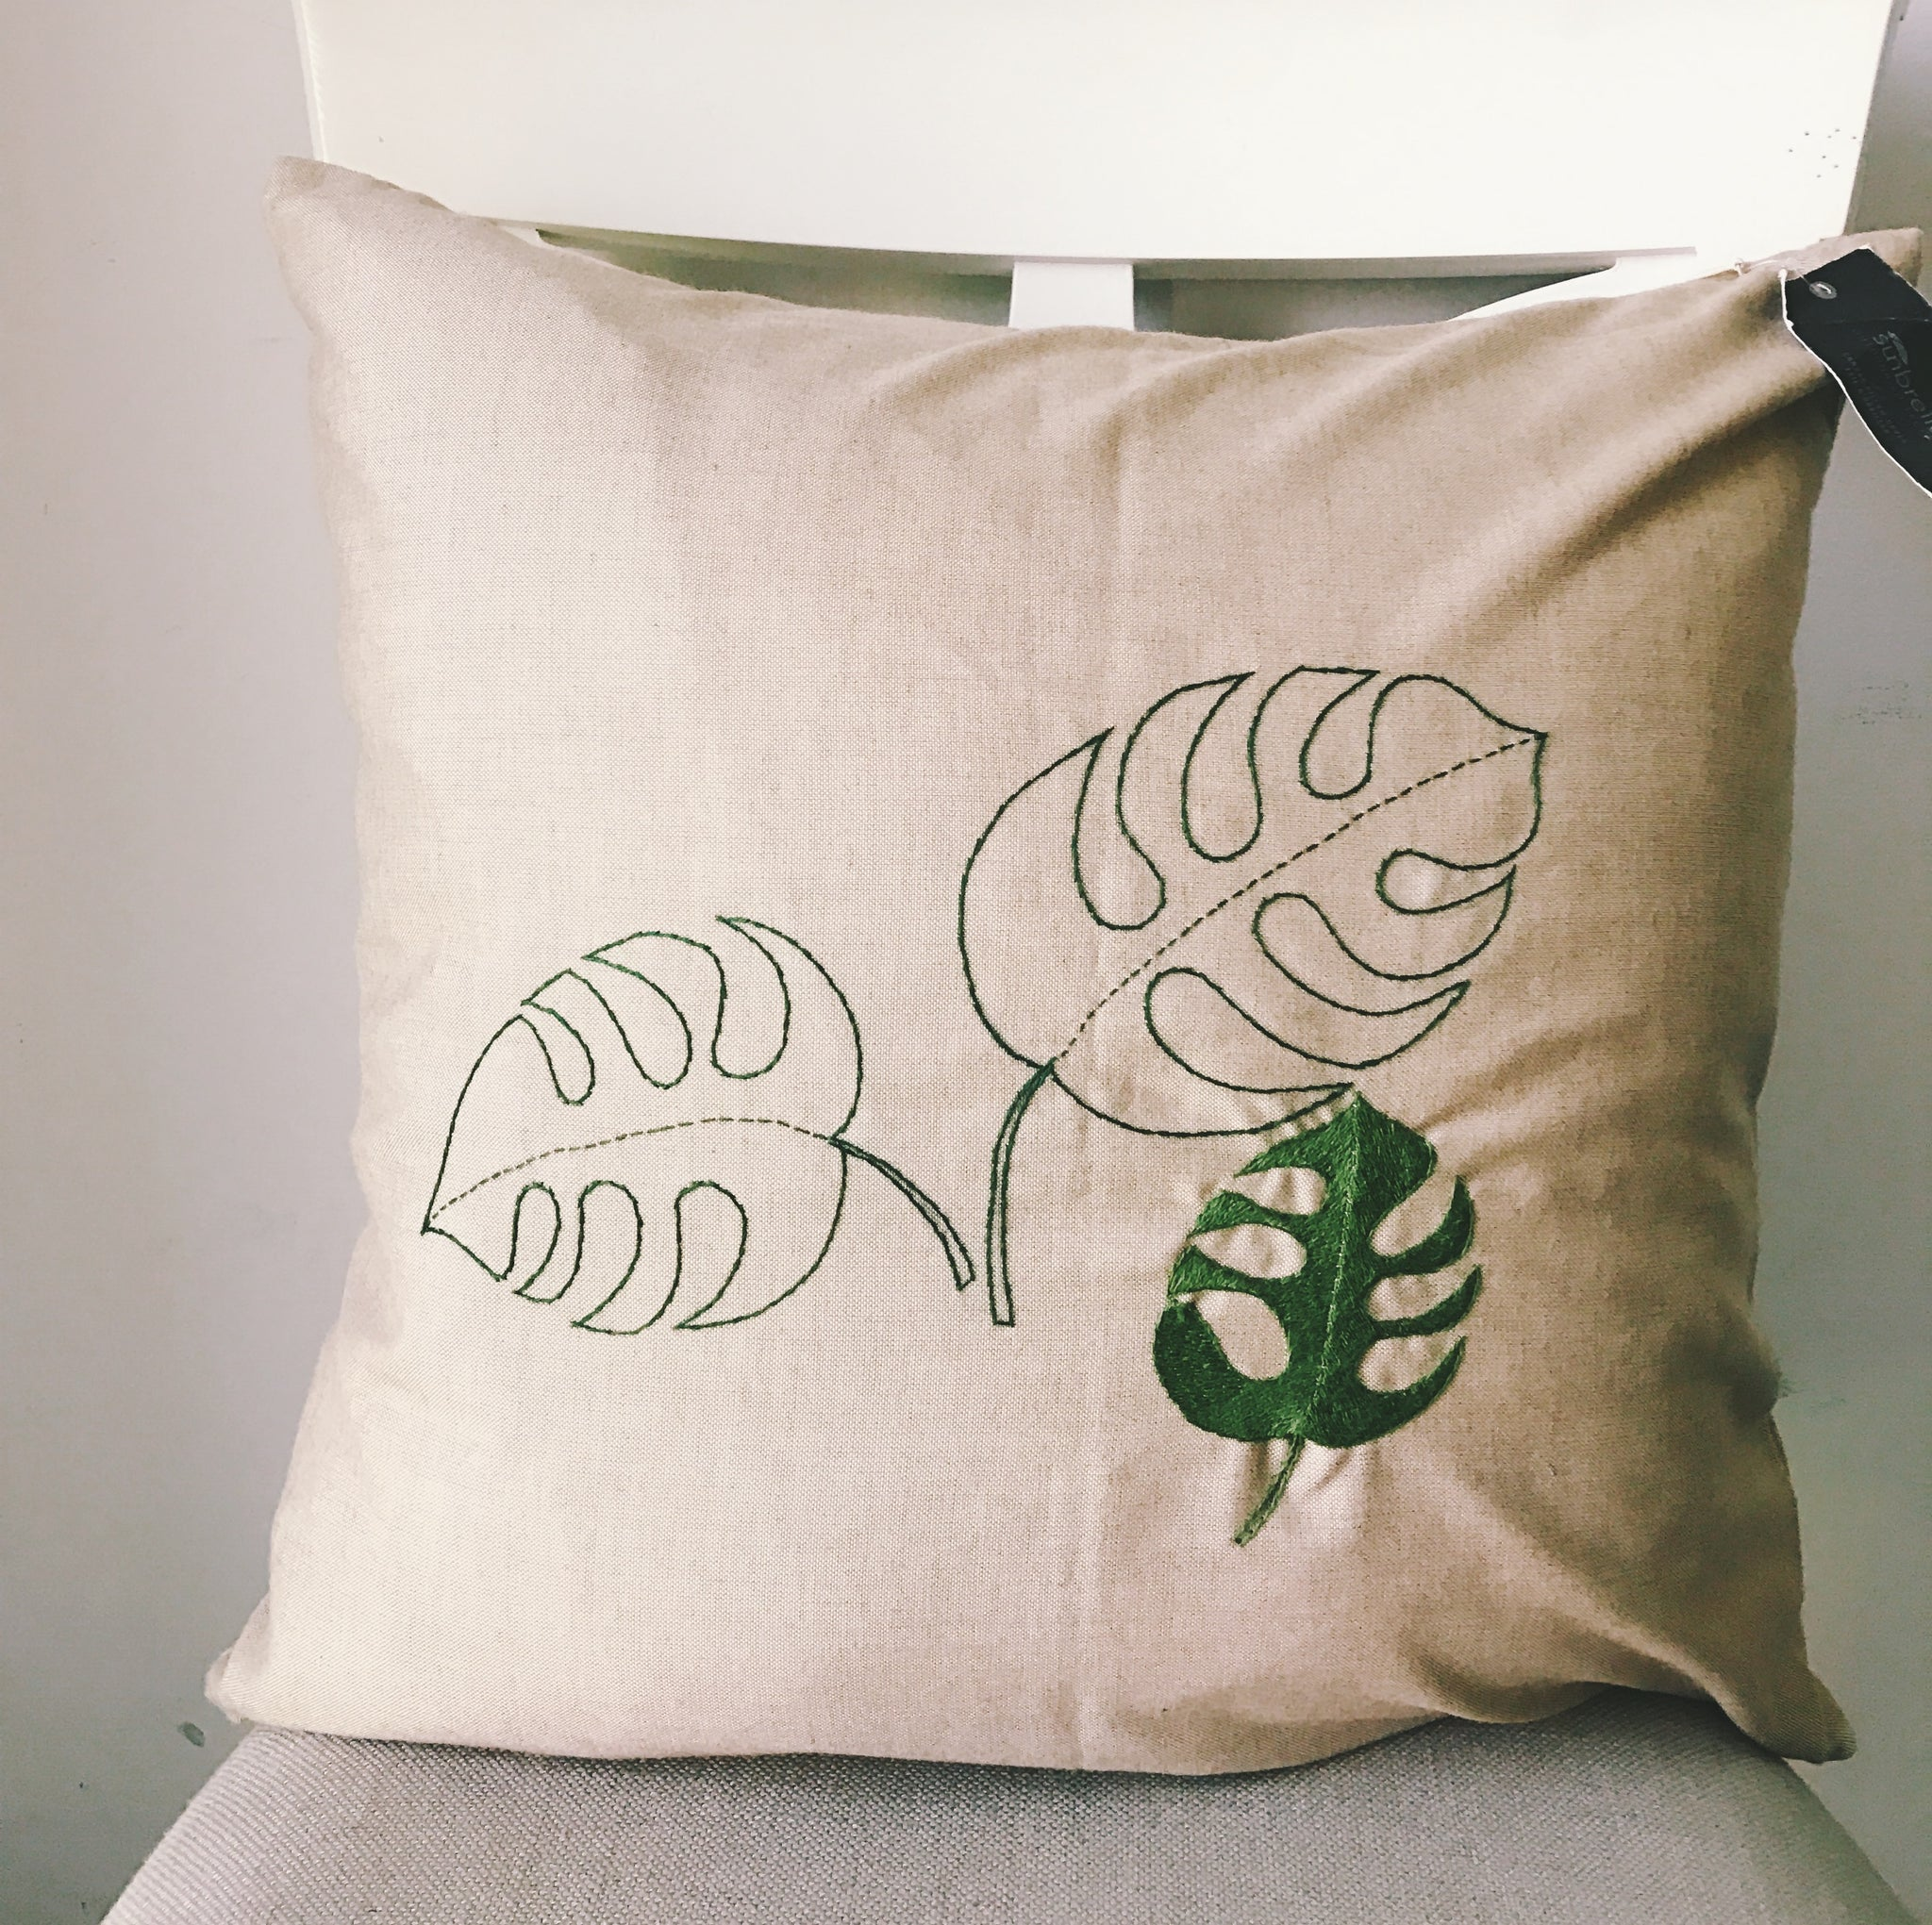 Astounding Monstera Leaf Palm Leaf Rh Hand Embroidered Pillow Case Ocoug Best Dining Table And Chair Ideas Images Ocougorg